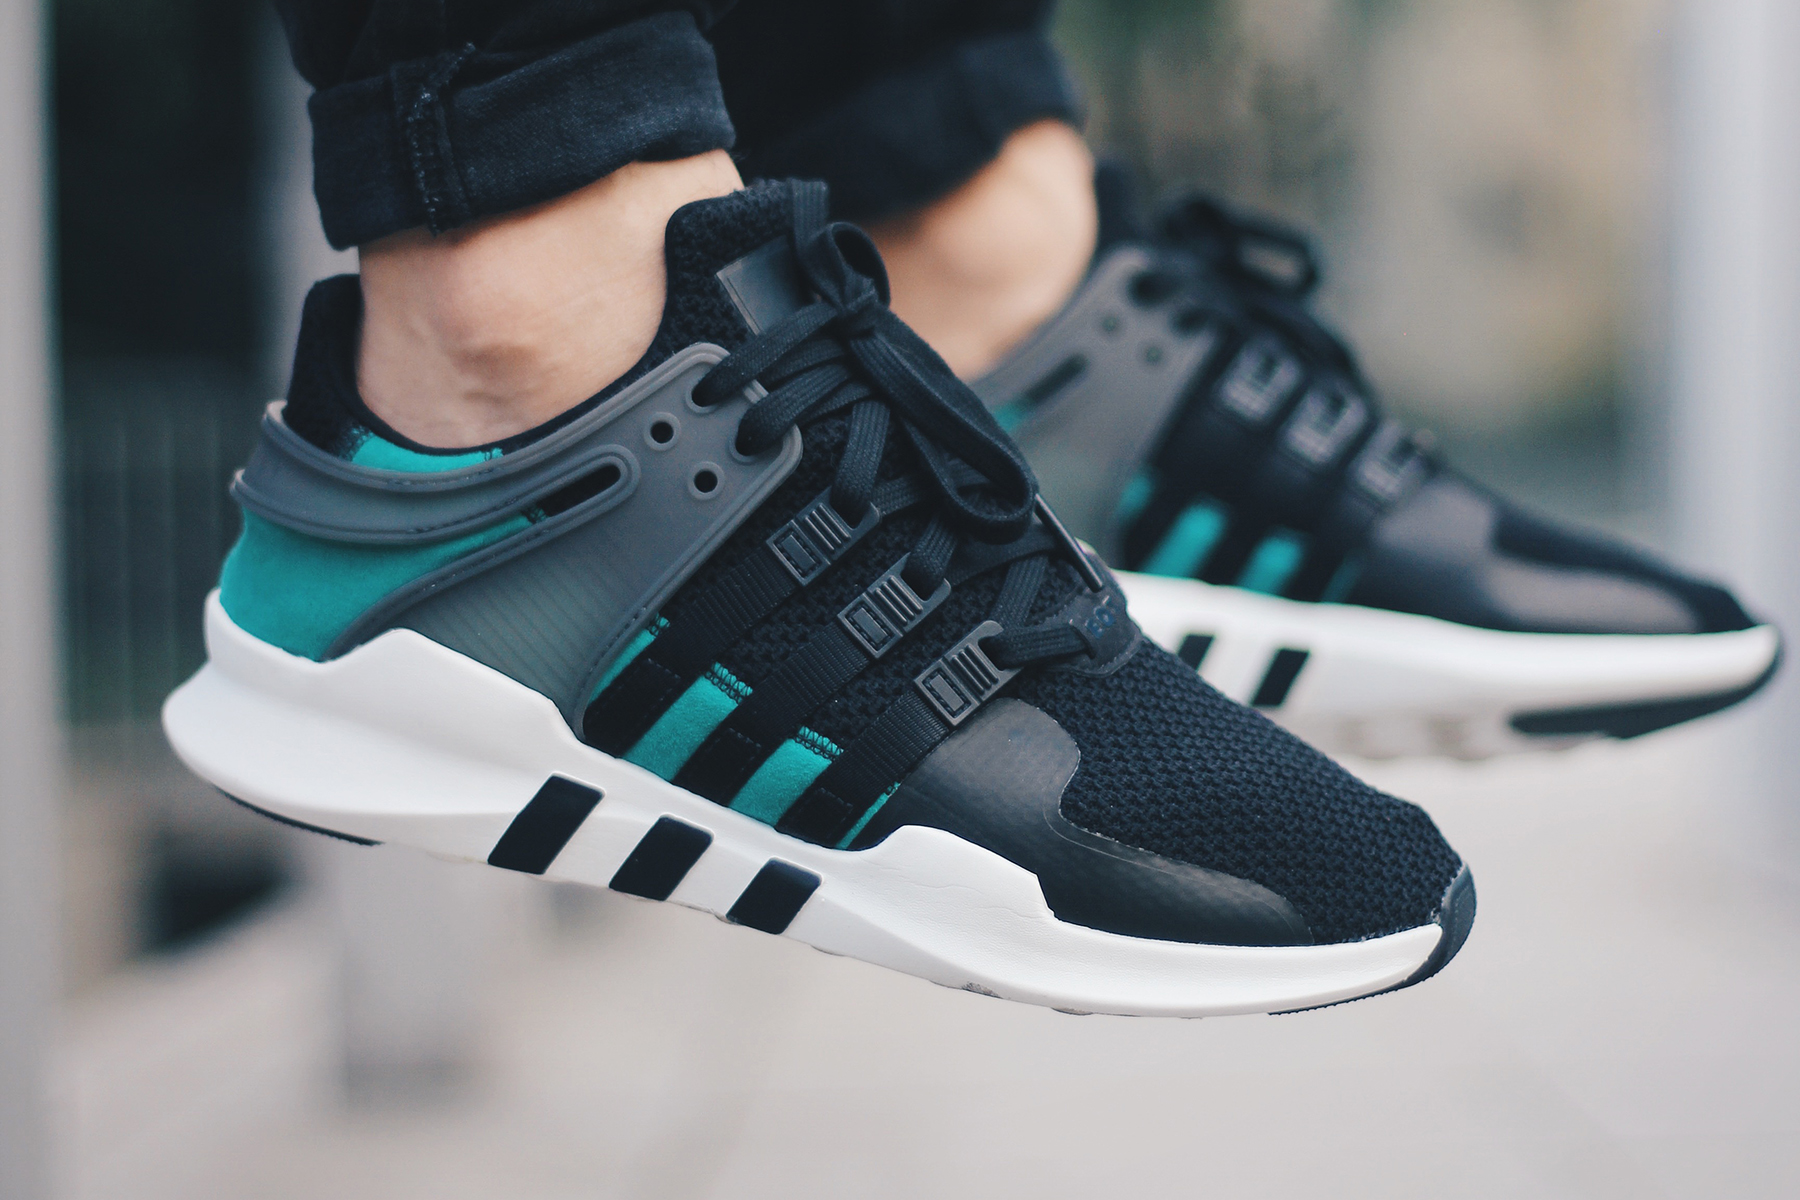 Adidas Uk   Shop Adidas Shoes For Men · Women ·Kids ... 62a705507